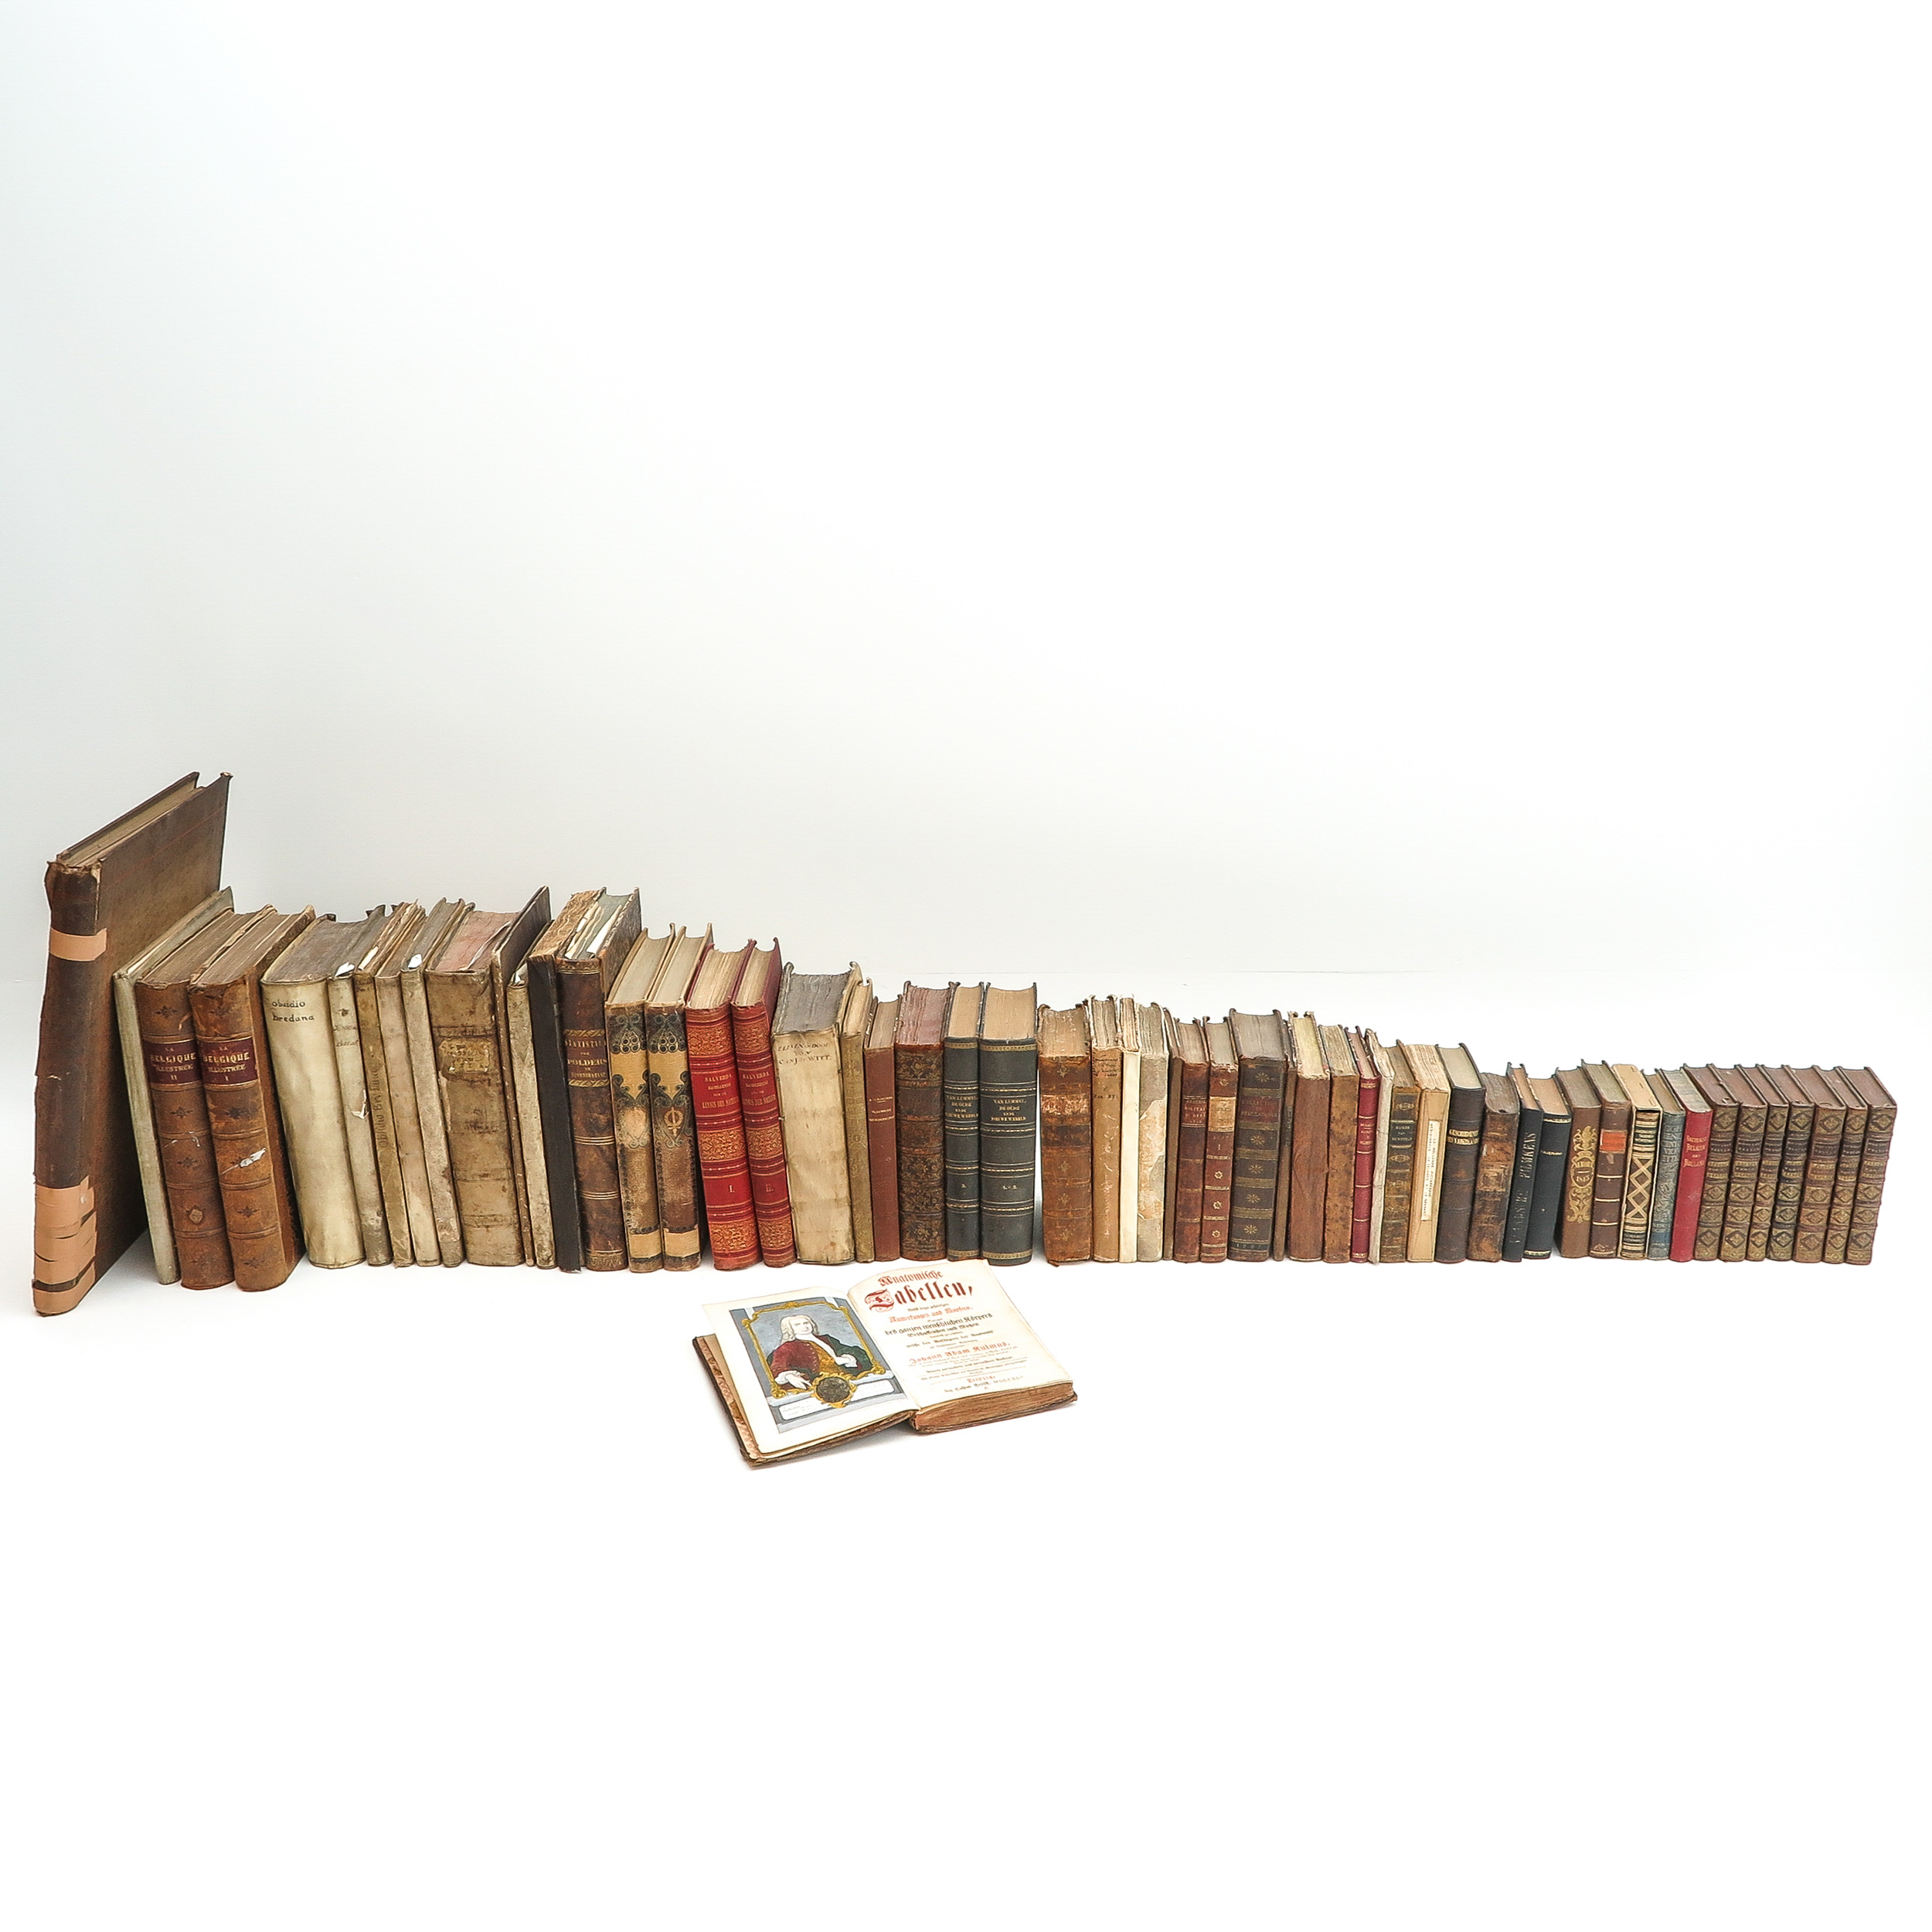 A Collection of Old Books